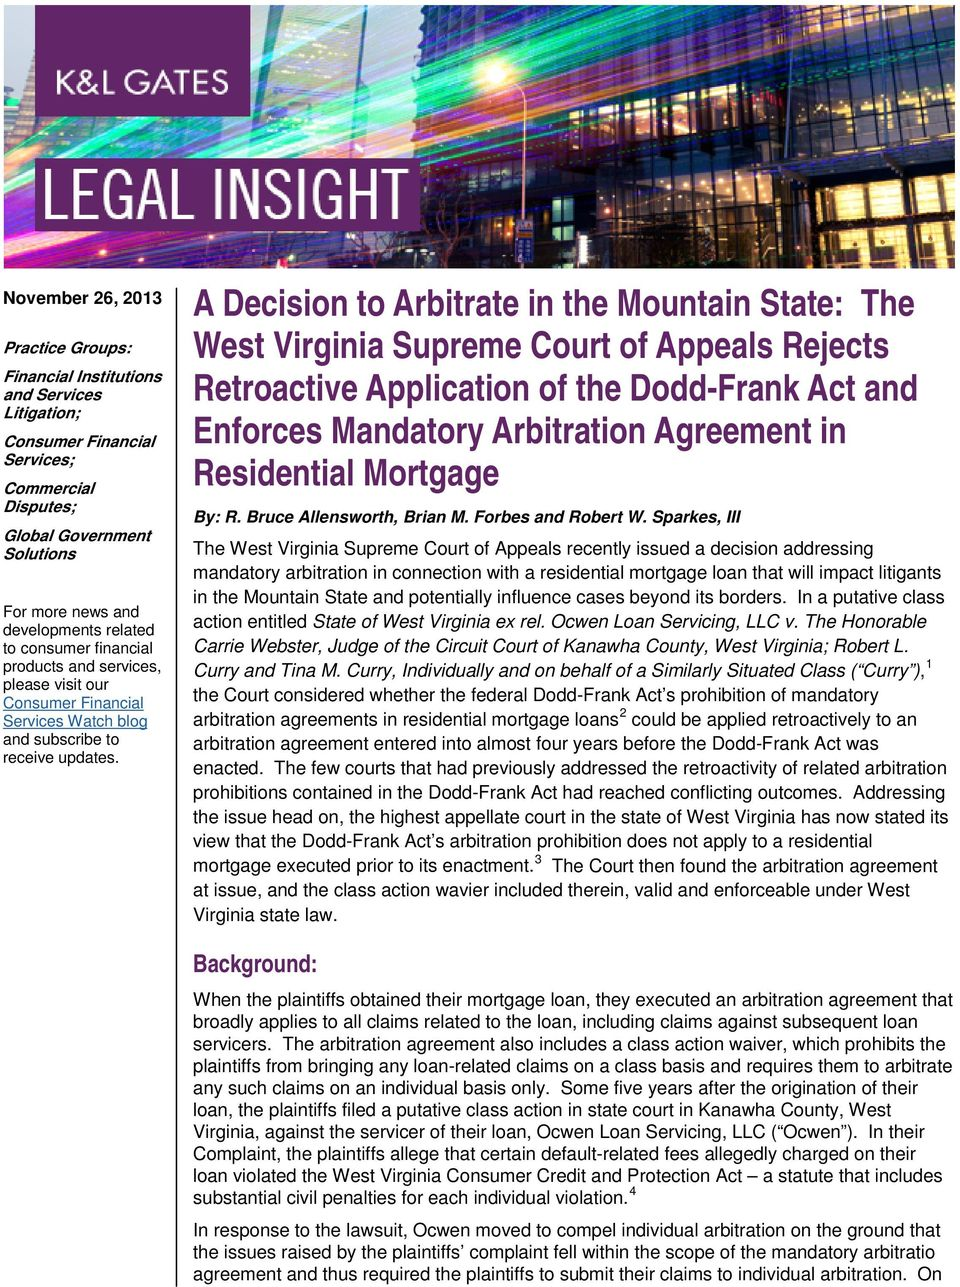 A Decision to Arbitrate in the Mountain State: The West Virginia Supreme Court of Appeals Rejects Retroactive Application of the Dodd-Frank Act and Enforces Mandatory Arbitration Agreement in